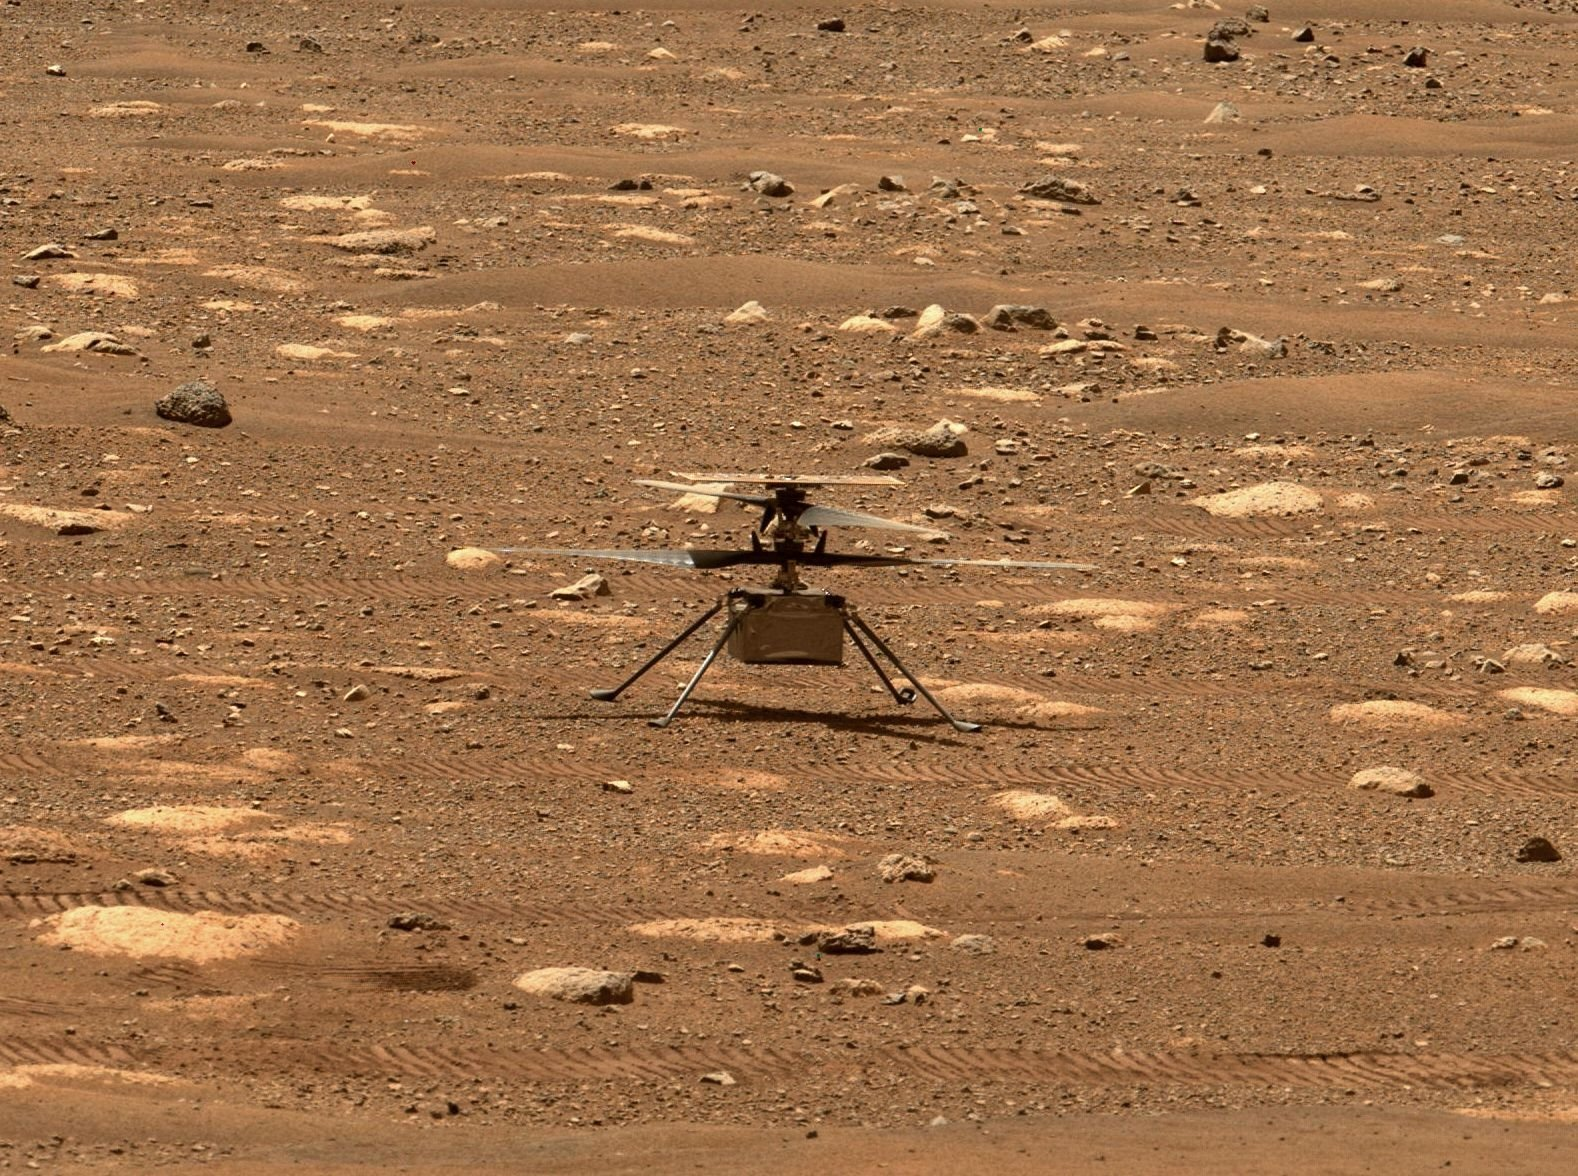 This NASA photo shows NASA's Ingenuity helicopter unlocking its rotor blades, allowing them to spin freely, on April 7, 2021, the 47th Martian day, or sol, of the mission, captured by the Mastcam-Z imager on NASA's Perseverance Mars rover on the following sol, April 8, 2021. (NASA/JPL-Caltech/MSSS via AFP)